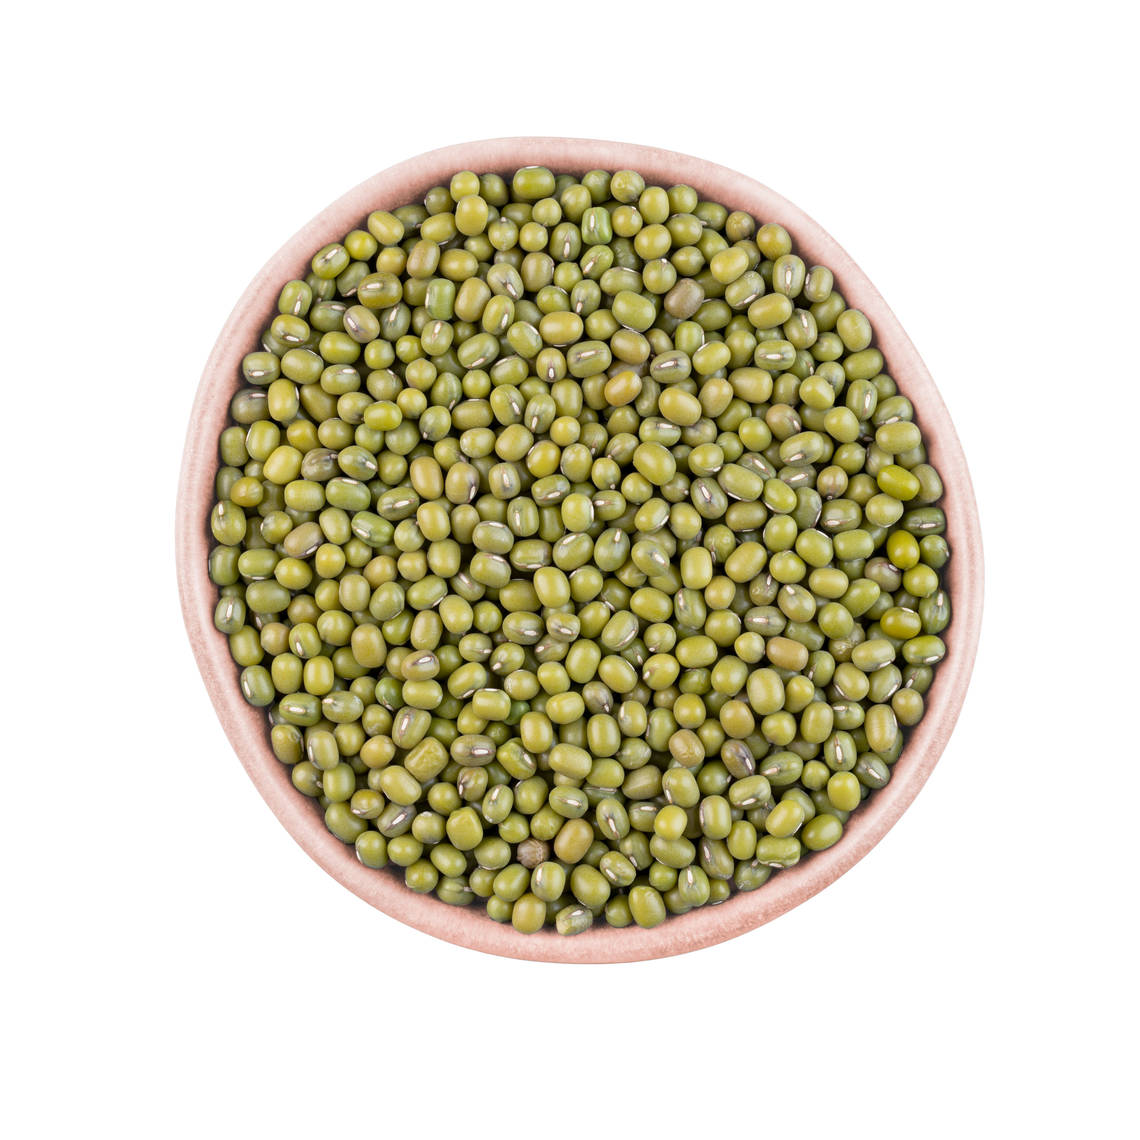 Mung beans, also referred to as moong beans or green grams or golden grams, are round shaped green beans, light-yellow on the inside.